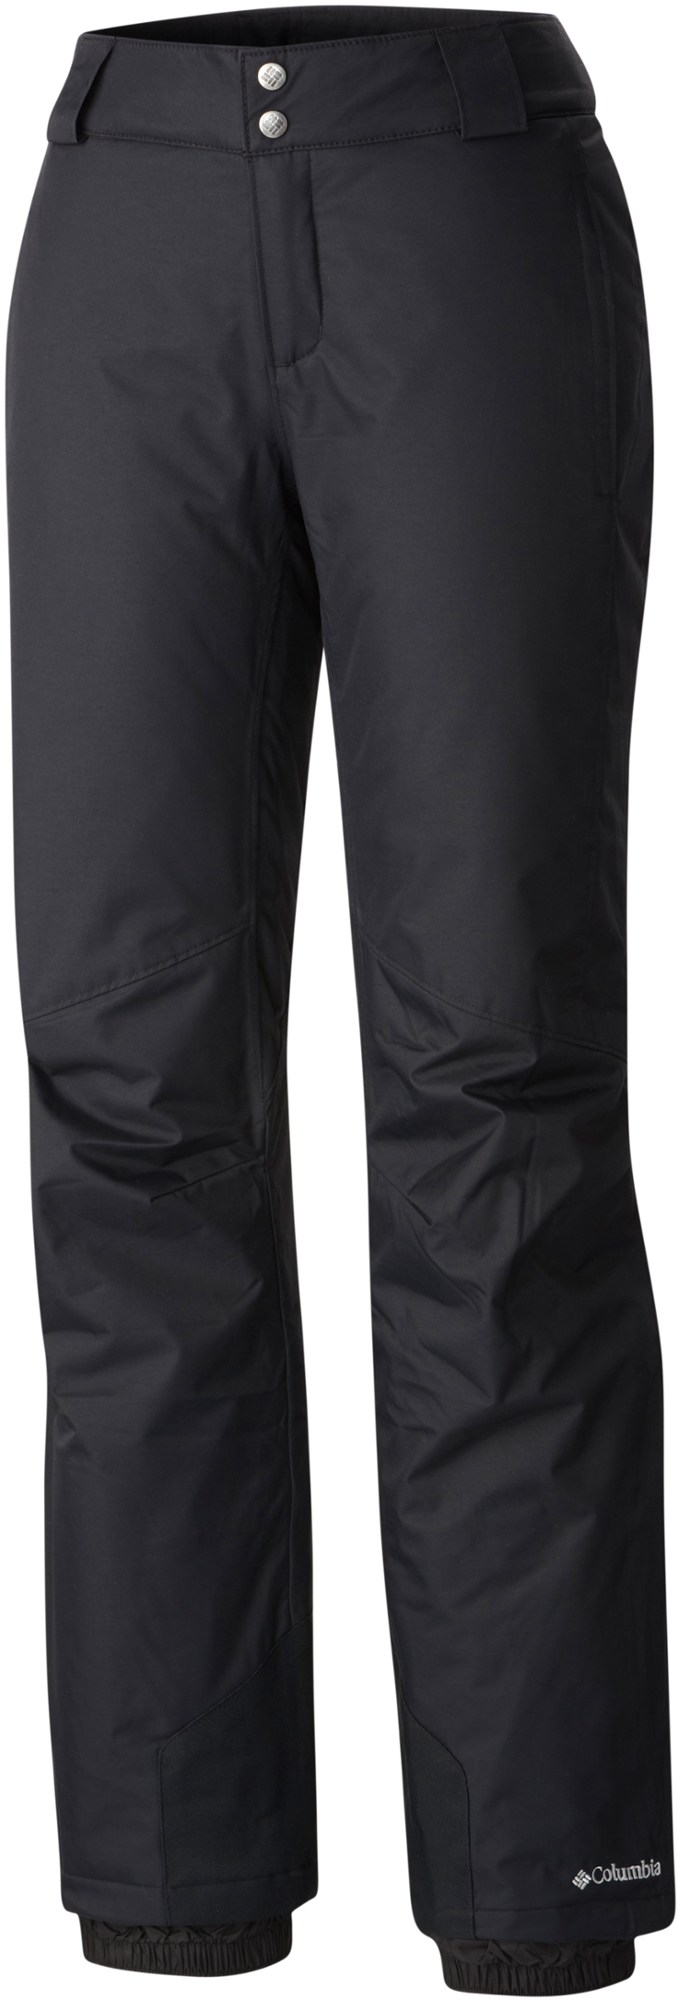 Columbia Bugaboo Omni-Heat Insulated Snow Pants - Women's Short Sizes